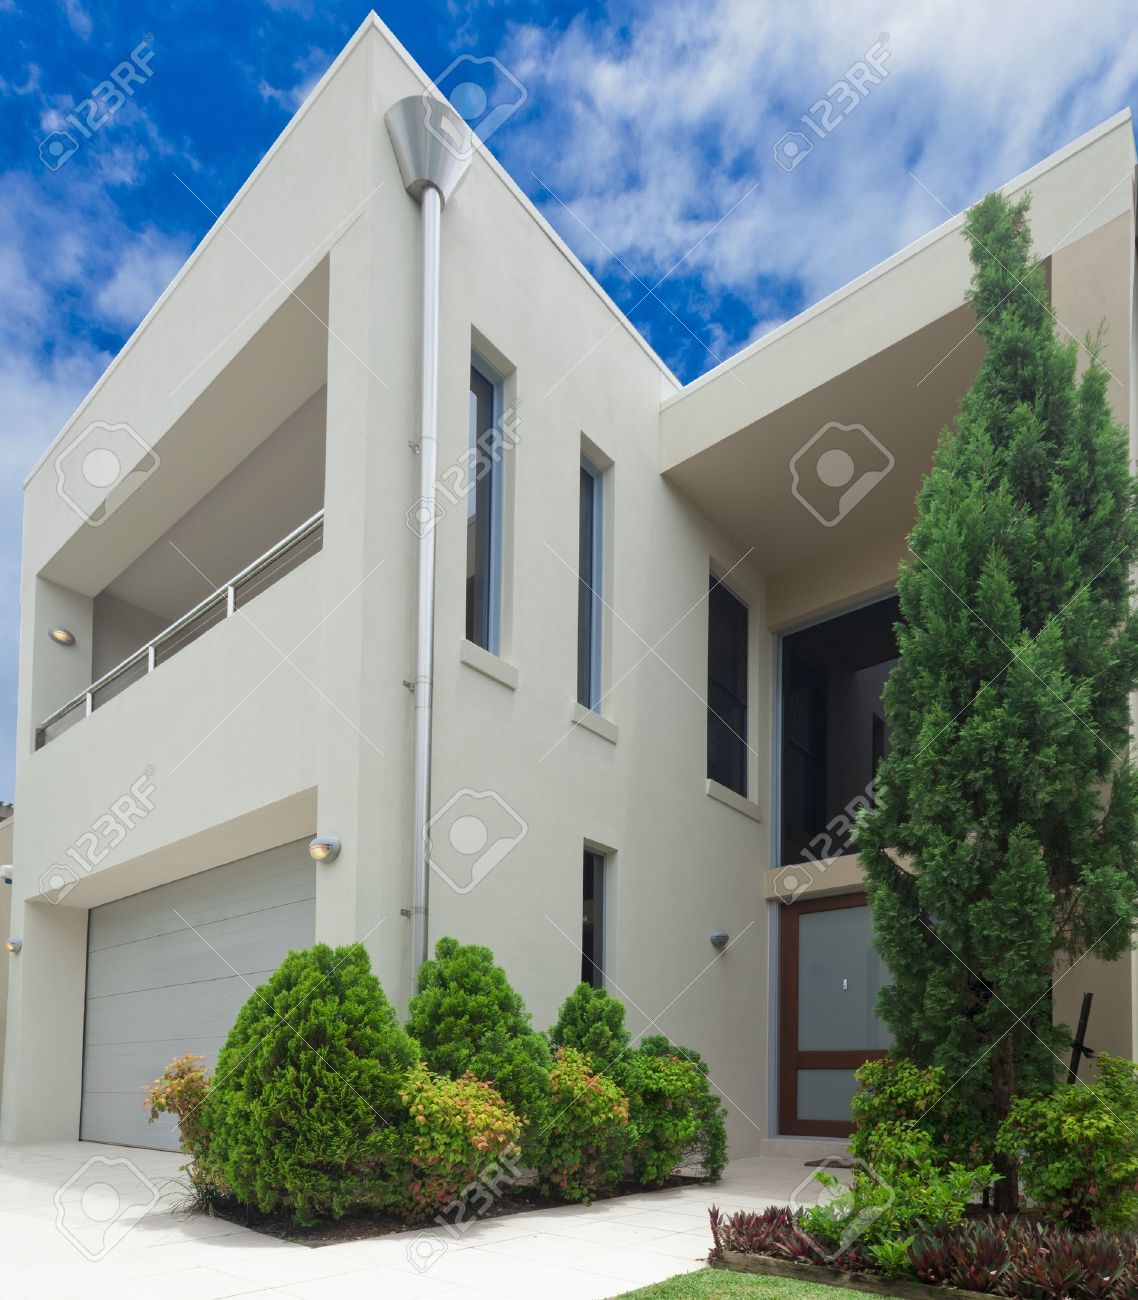 Luxurious Modern Multilevel House Front Stock Photo, Picture nd ... - ^